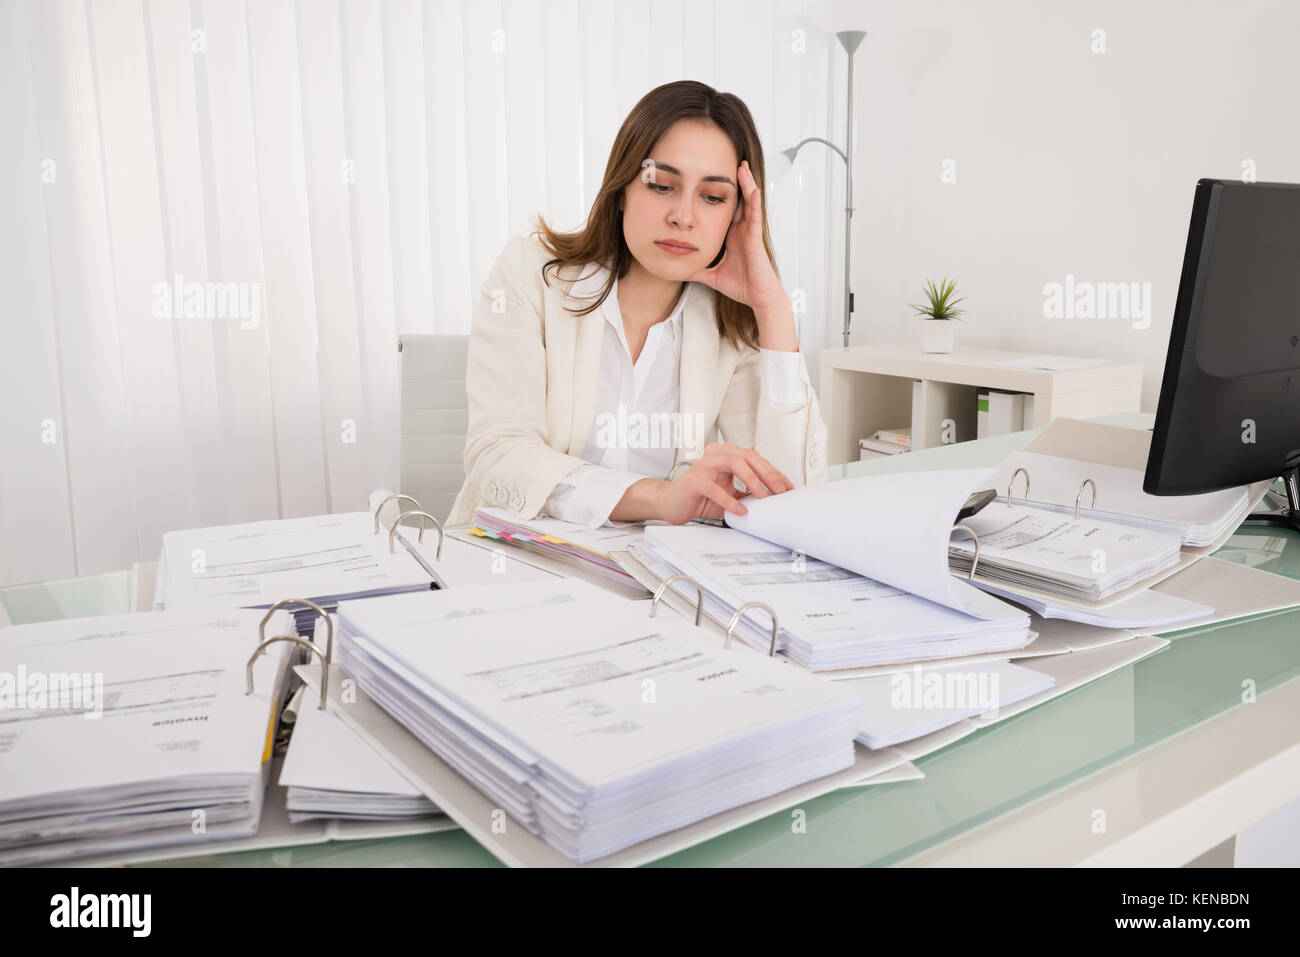 Woman accountant